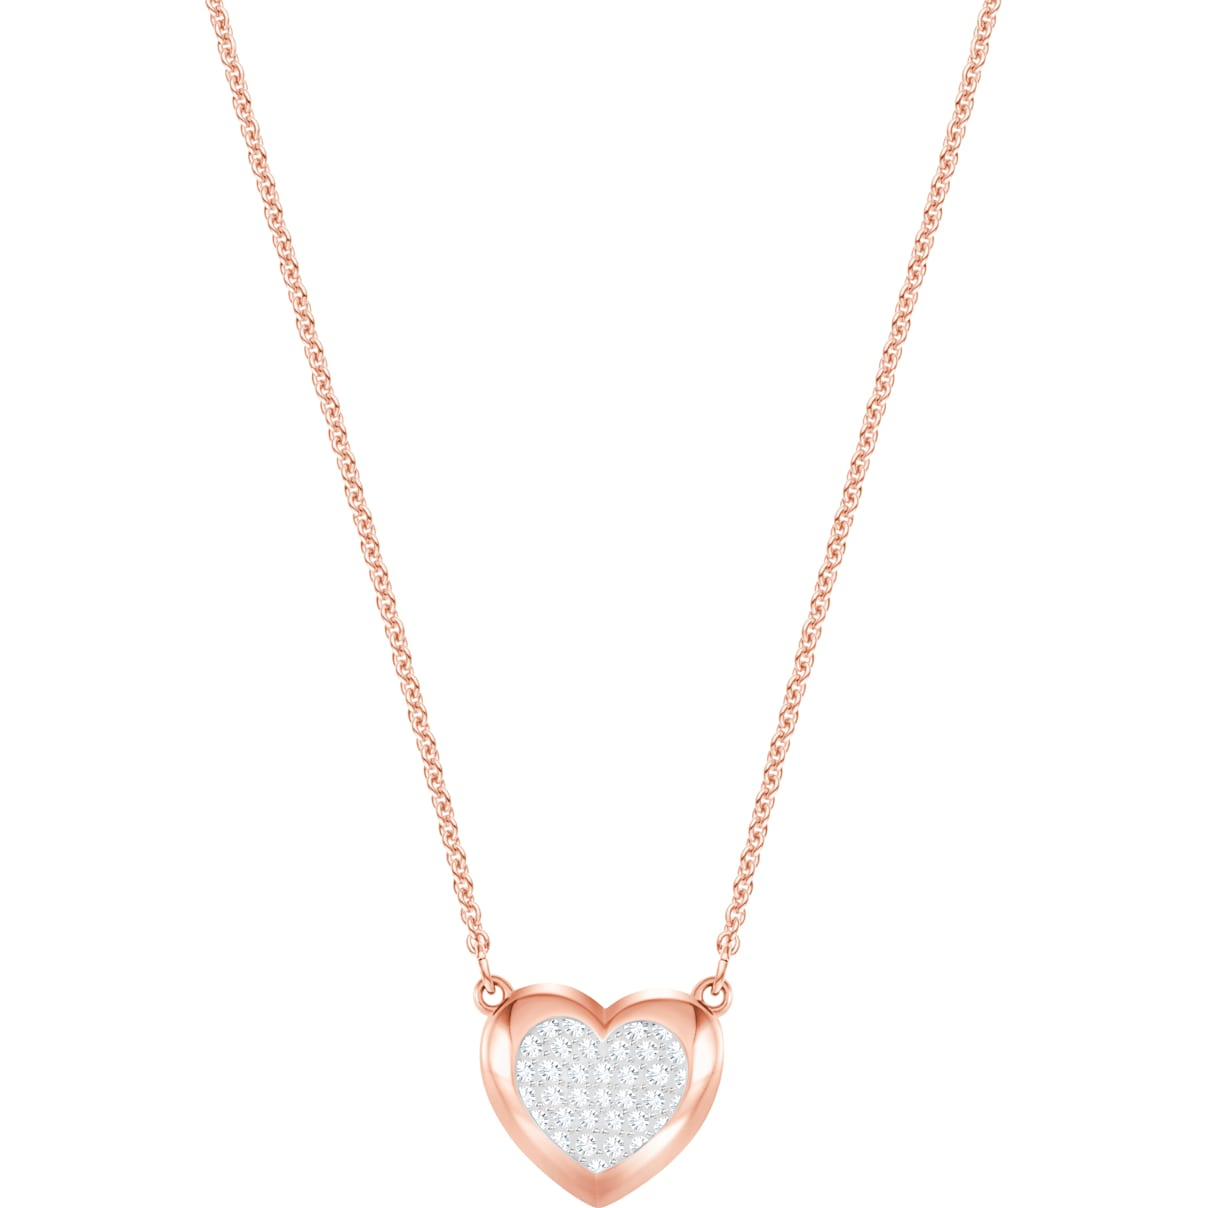 Swarovski Hall Heart Pendant, White, Rose-gold tone plated